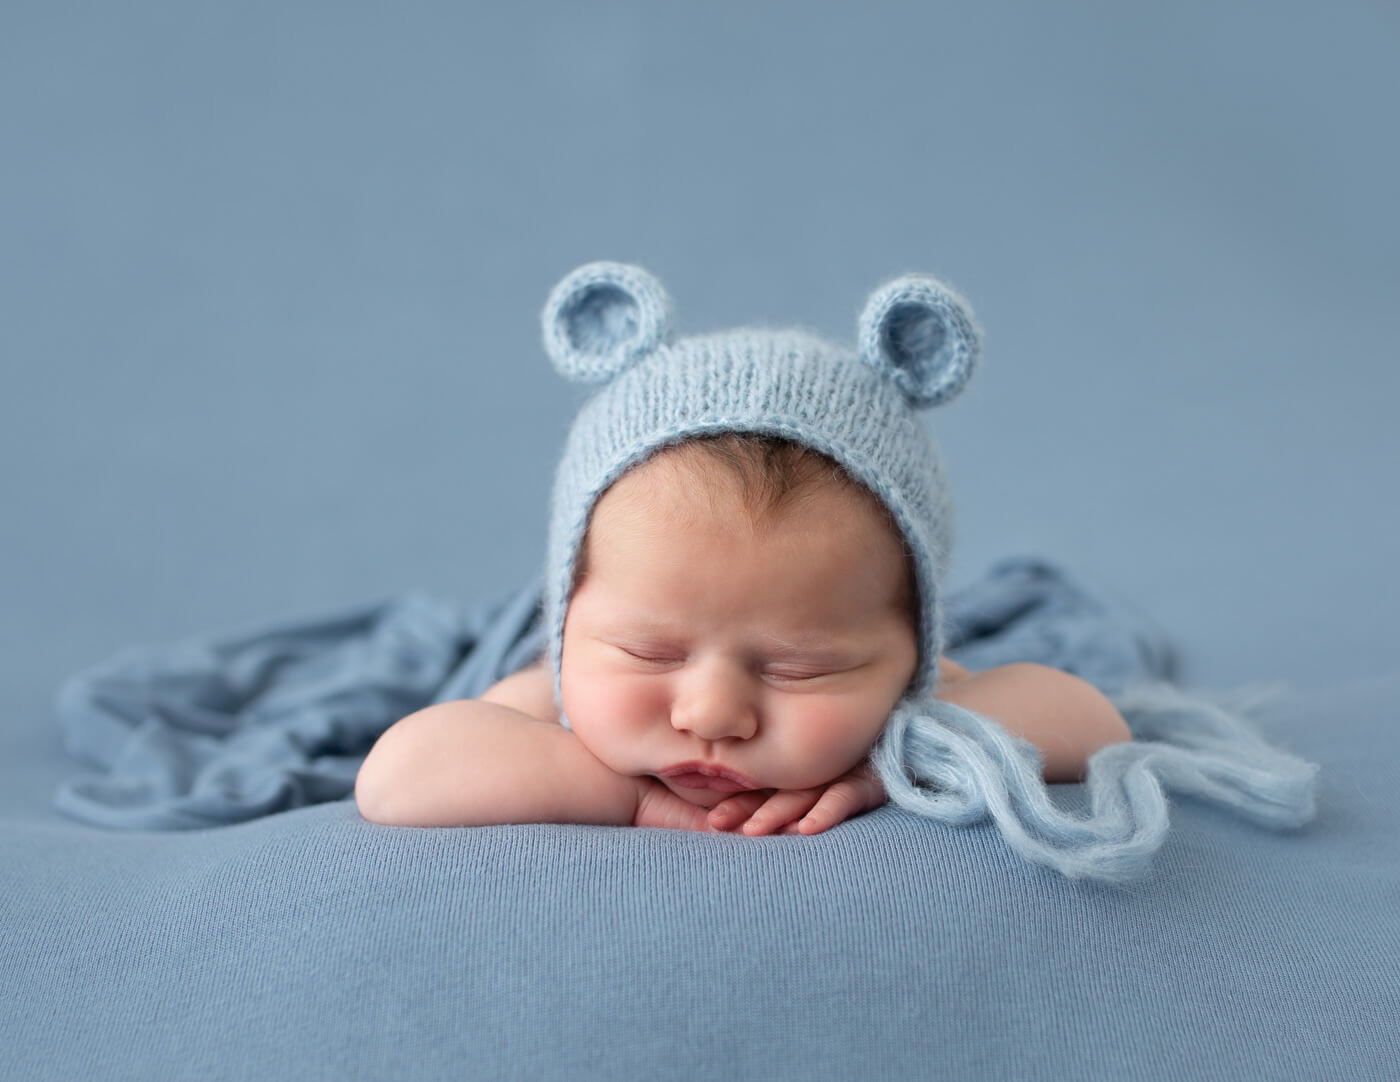 Precious newborn boy in head on hands pose.